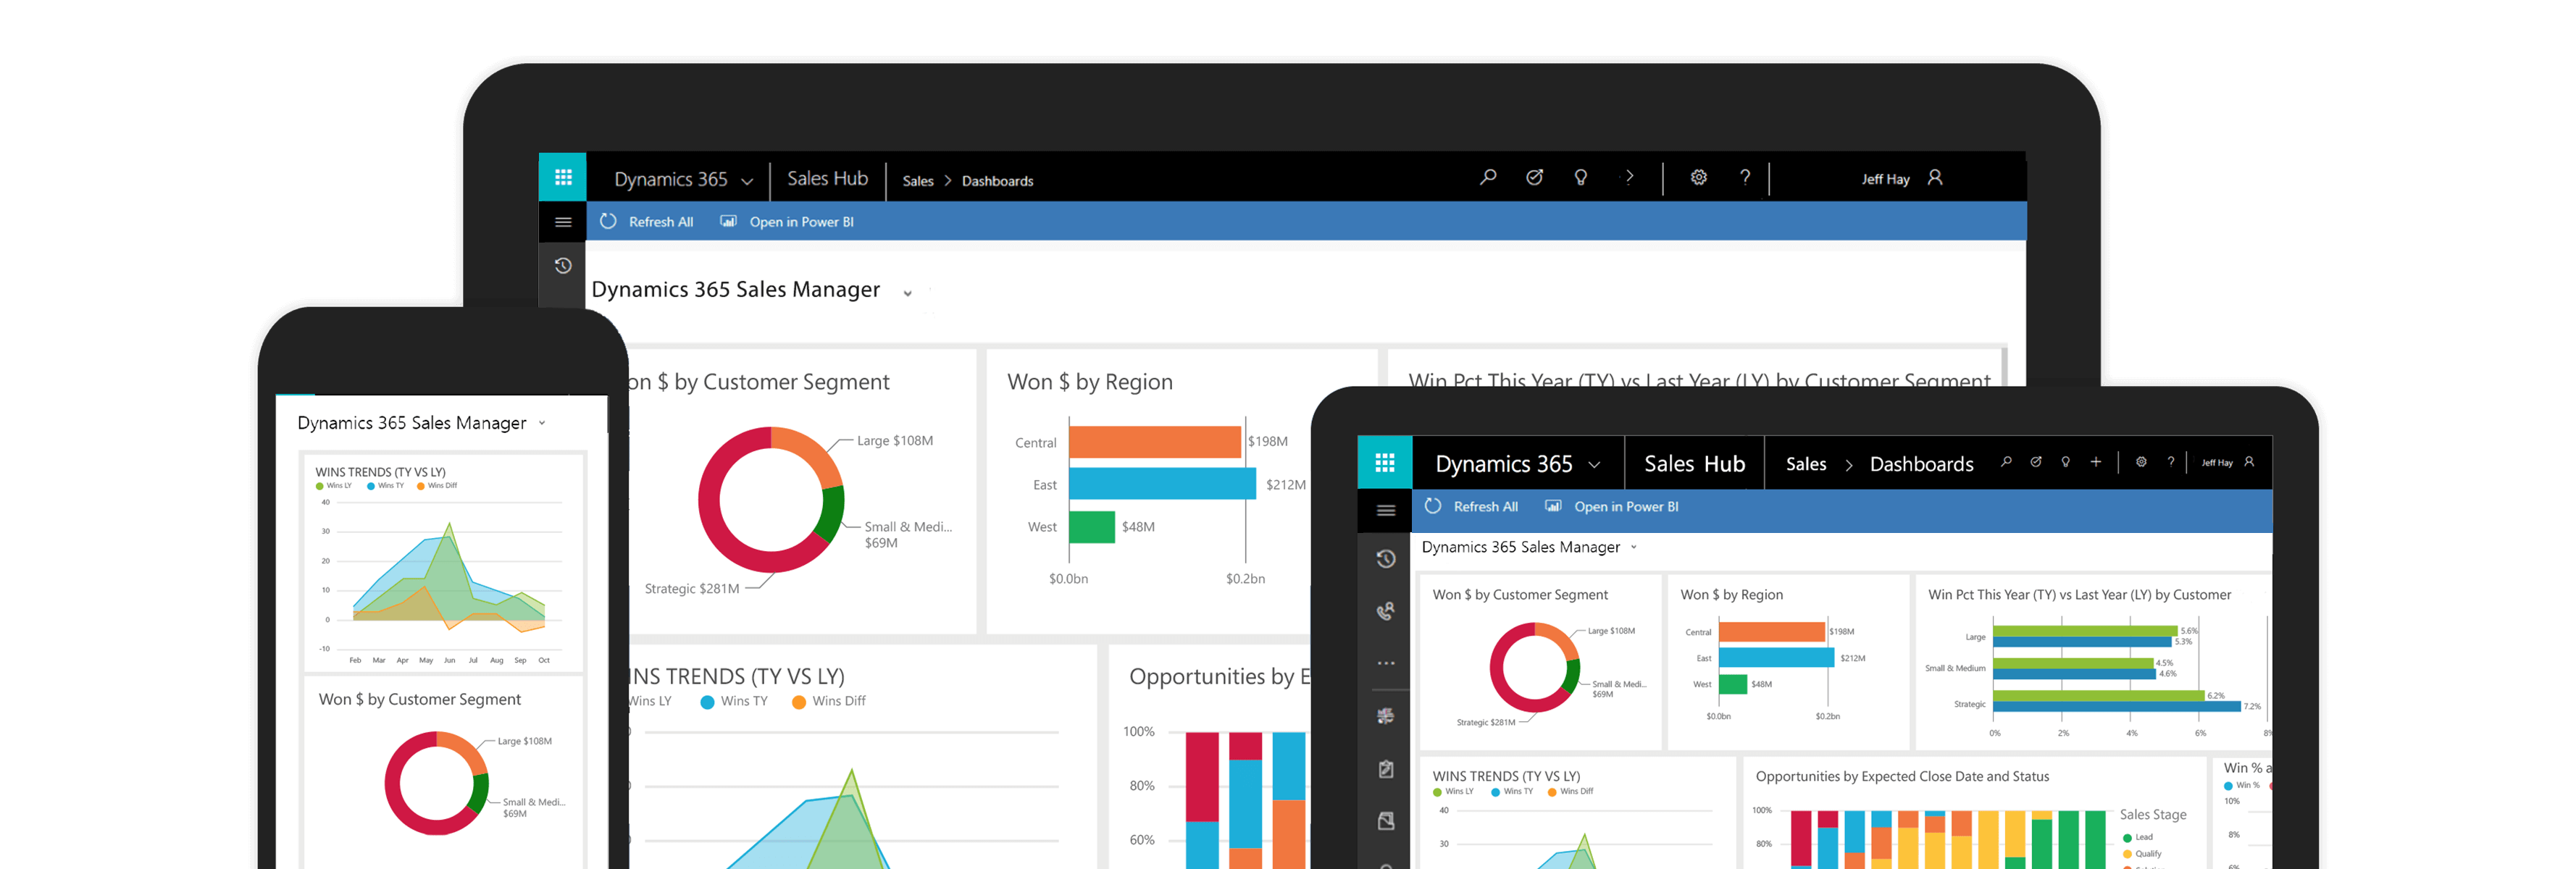 Captura de tela do Dynamics 365 for Sales